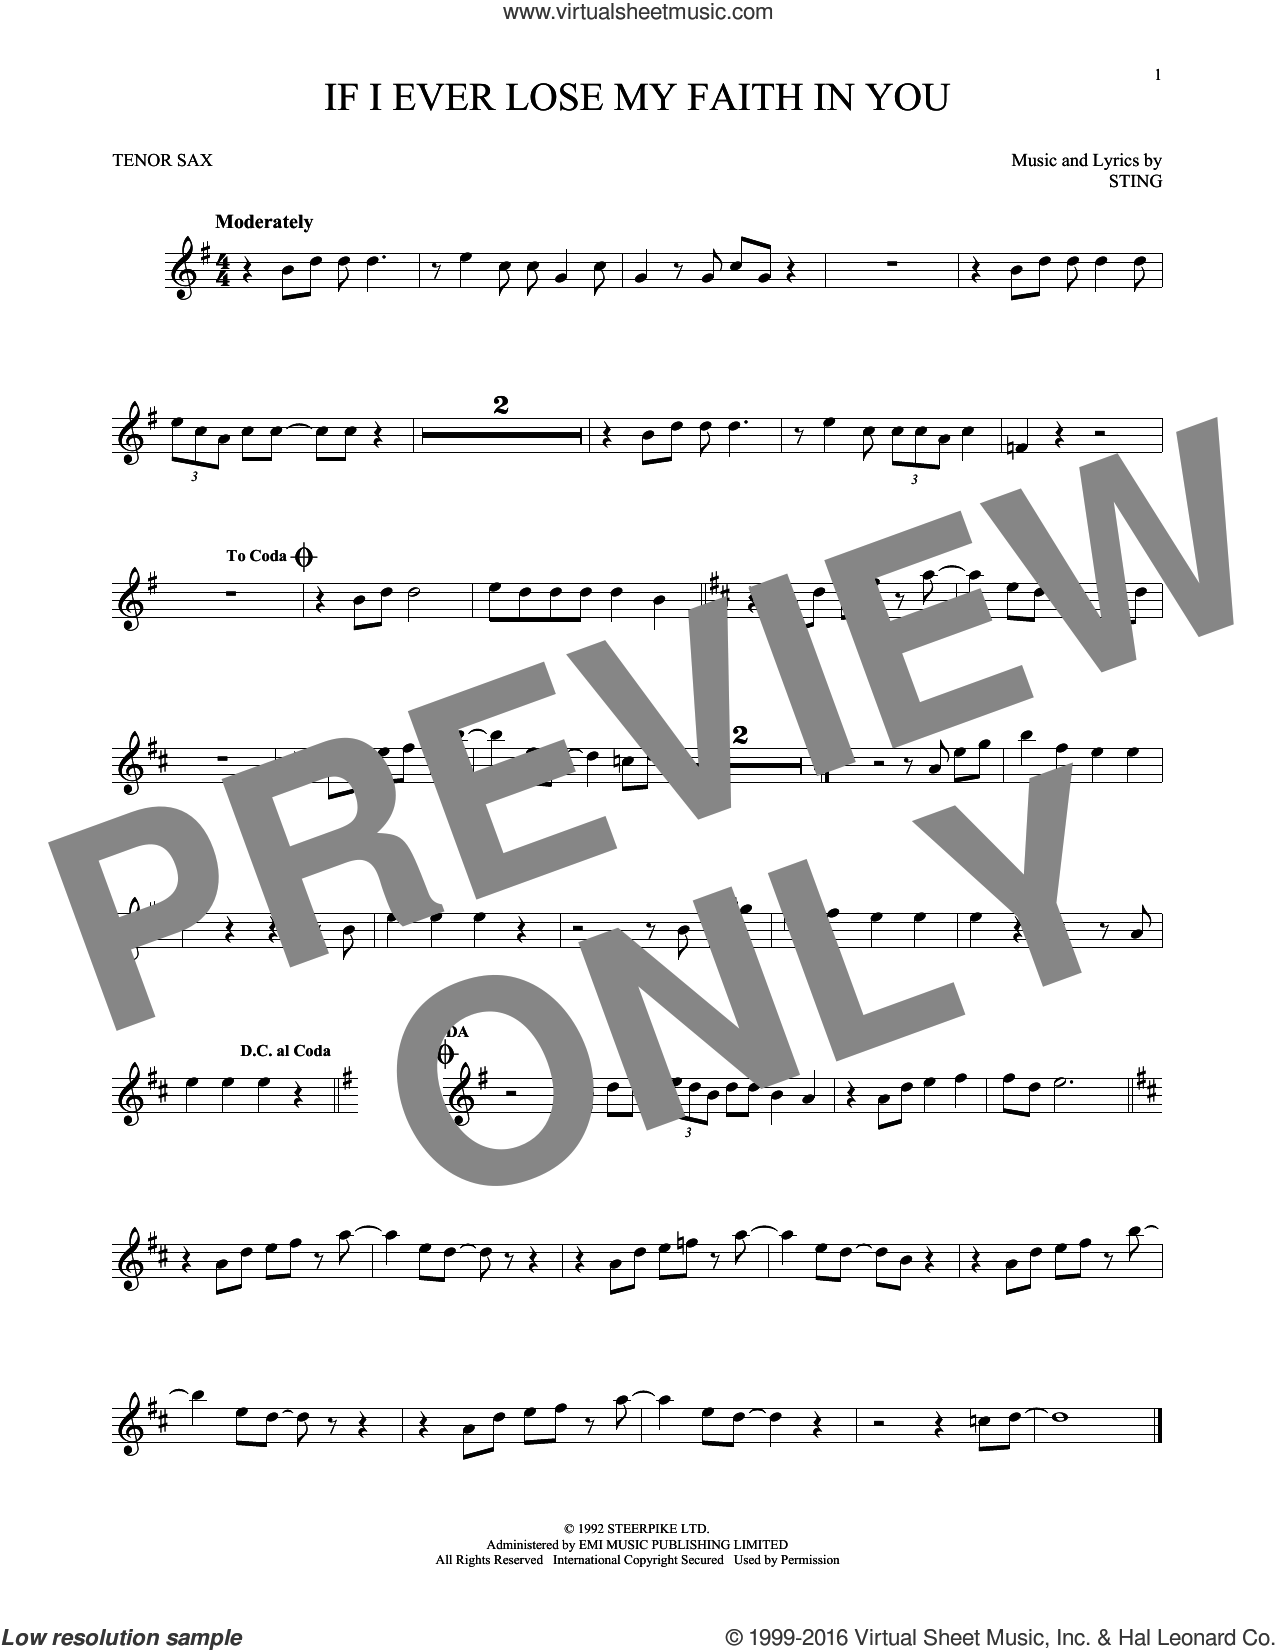 If I Ever Lose My Faith In You sheet music for tenor saxophone solo by Sting. Score Image Preview.